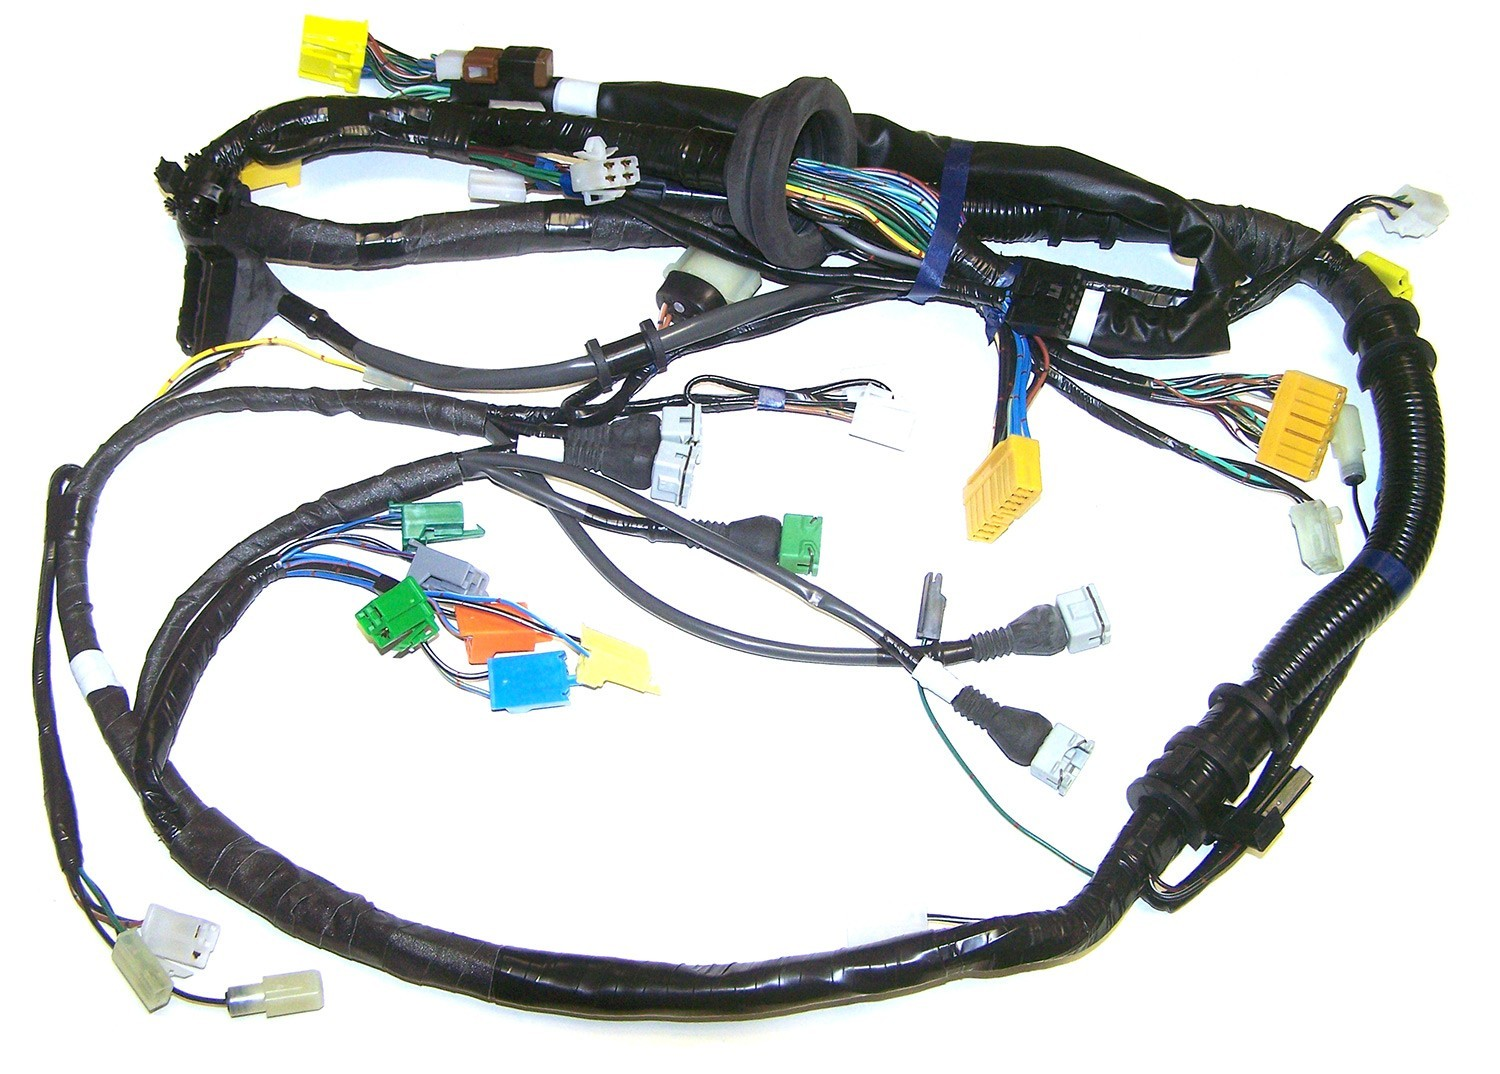 N332 18 051KDetail 87 88 turbo rx7 engine wiring harness (n332 18 051k) fc3s wiring harness at suagrazia.org